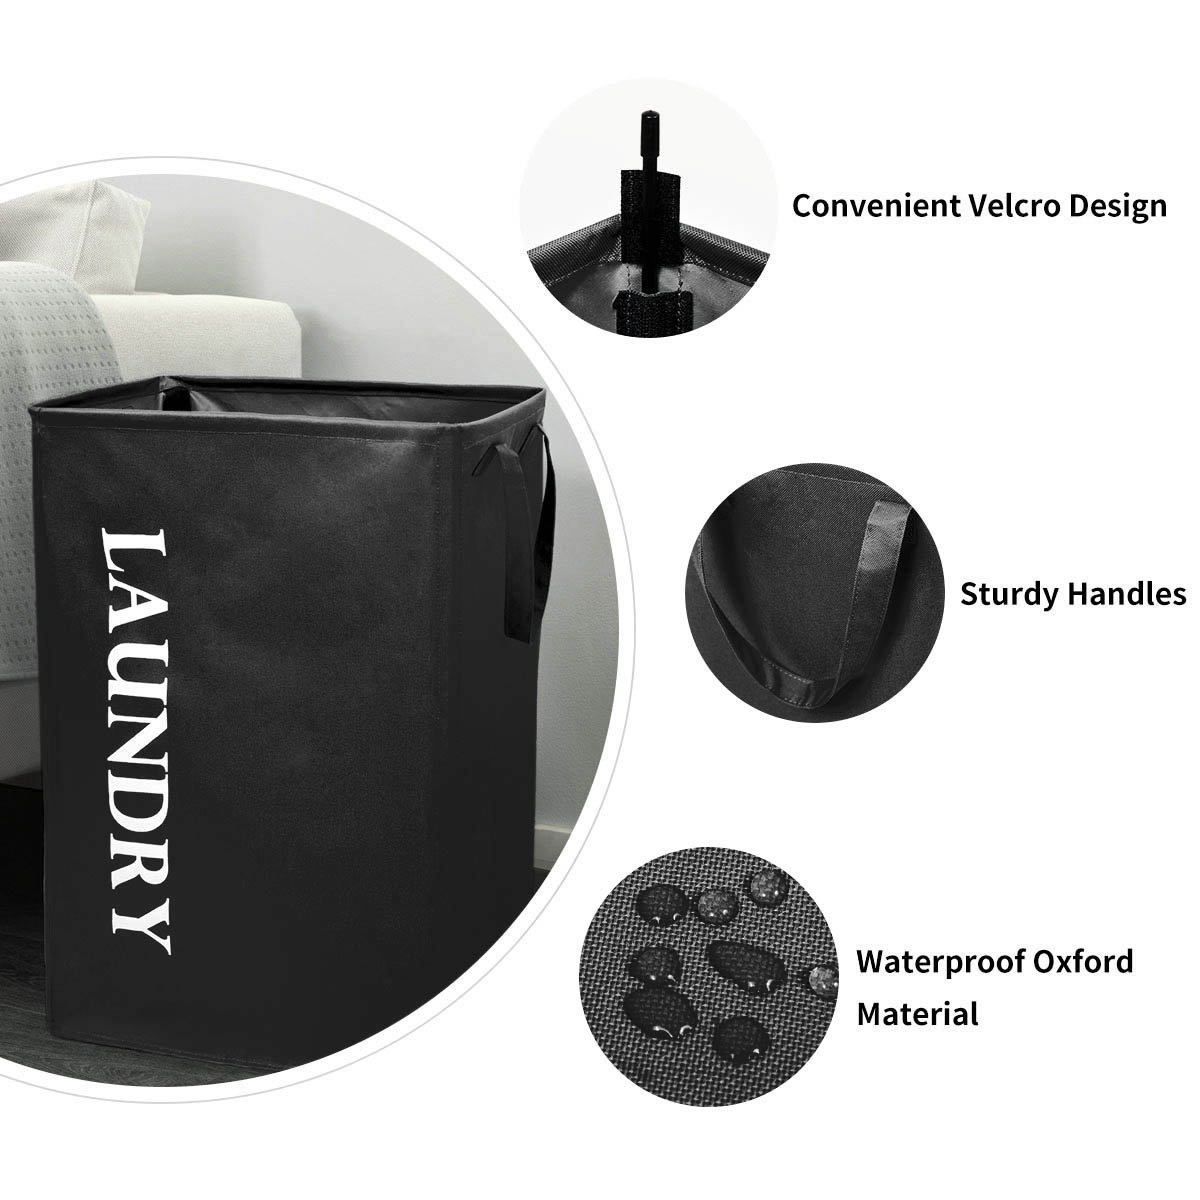 Chrislley Foldable Laundry Basket Large Standing Handy Rectangular Laundry Bin 600D Oxford Fabric Waterproof Laundry Hamper 73.6L (Black)